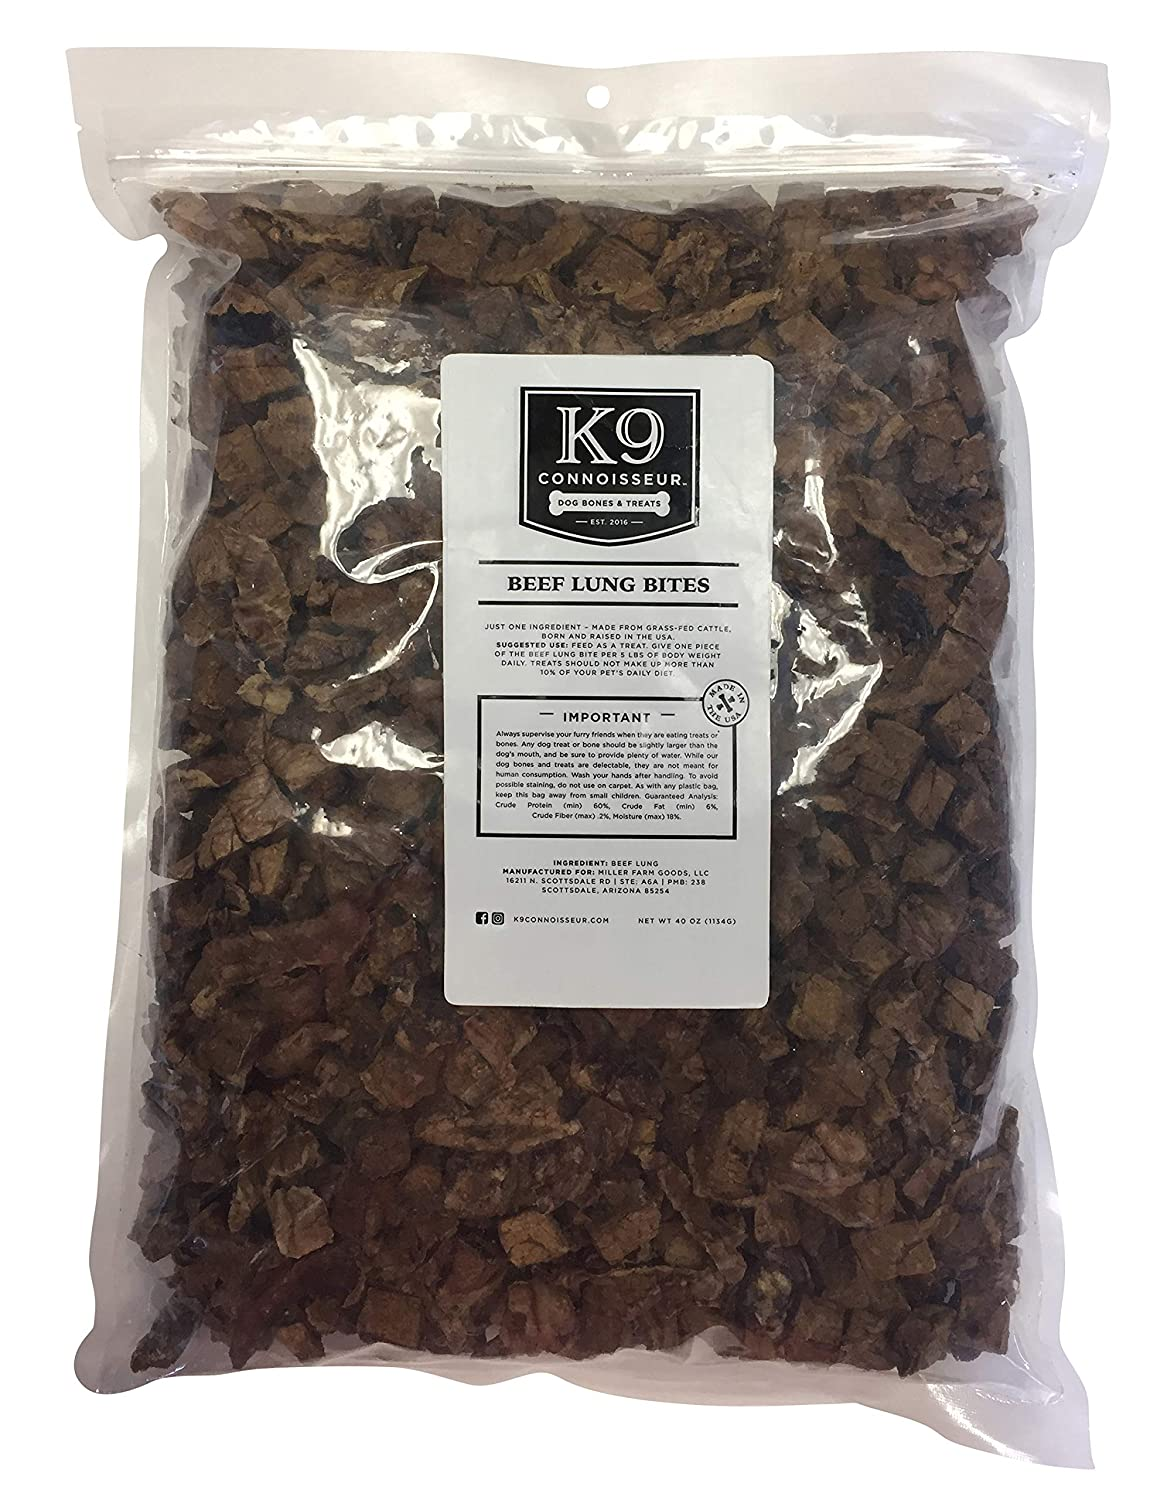 K9 Connoisseur Dog Lung Bites Treats Made in The USA Oderless Grain Free Beef Chew Bites Rich in Protein Best for Puppies, Small, Medium and Large Breed Dogs